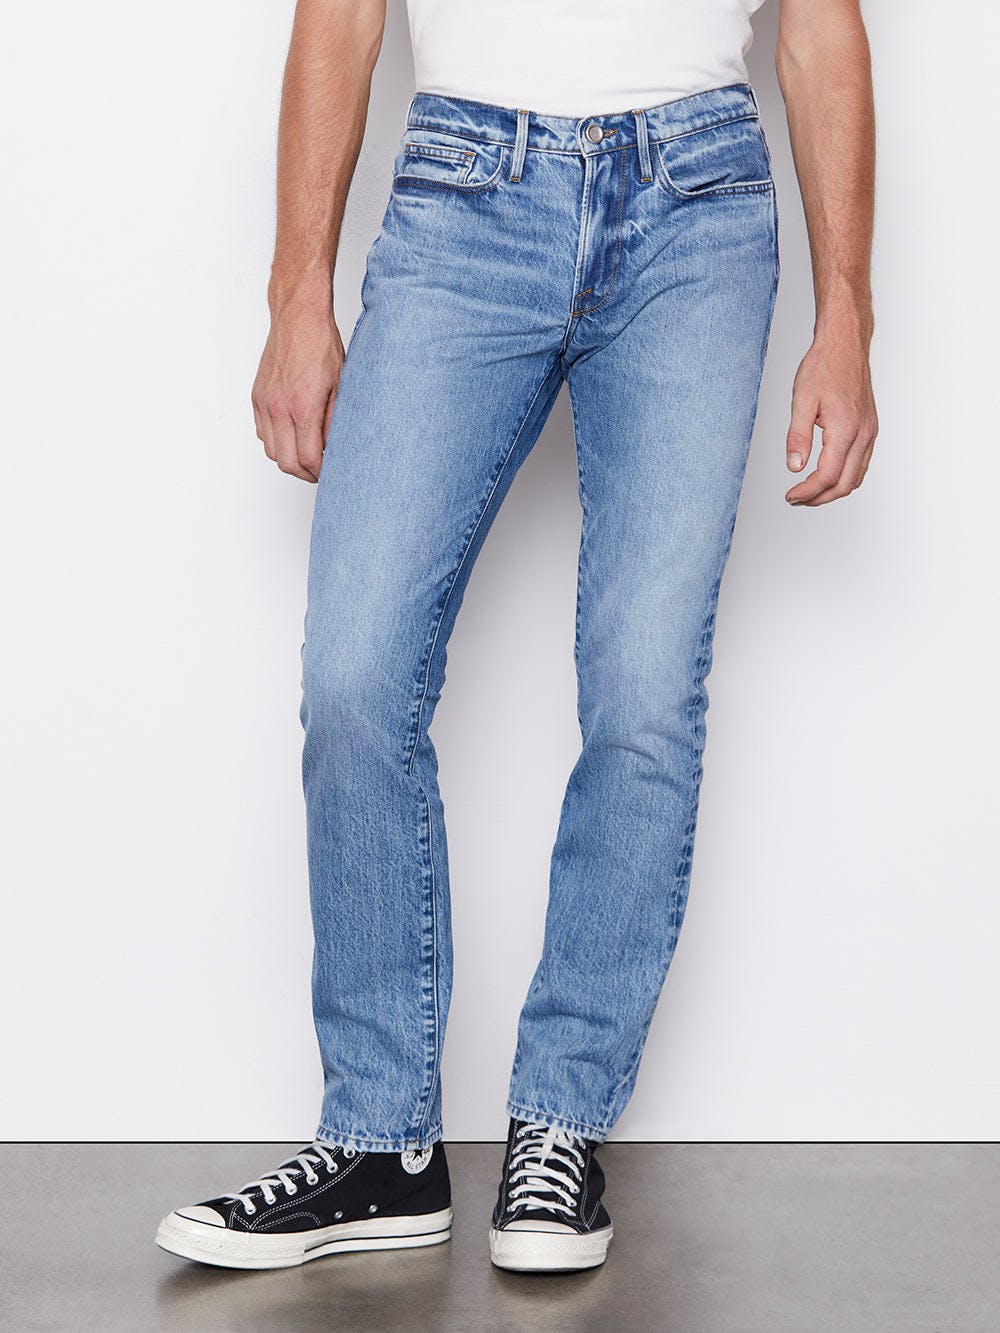 jeans front view